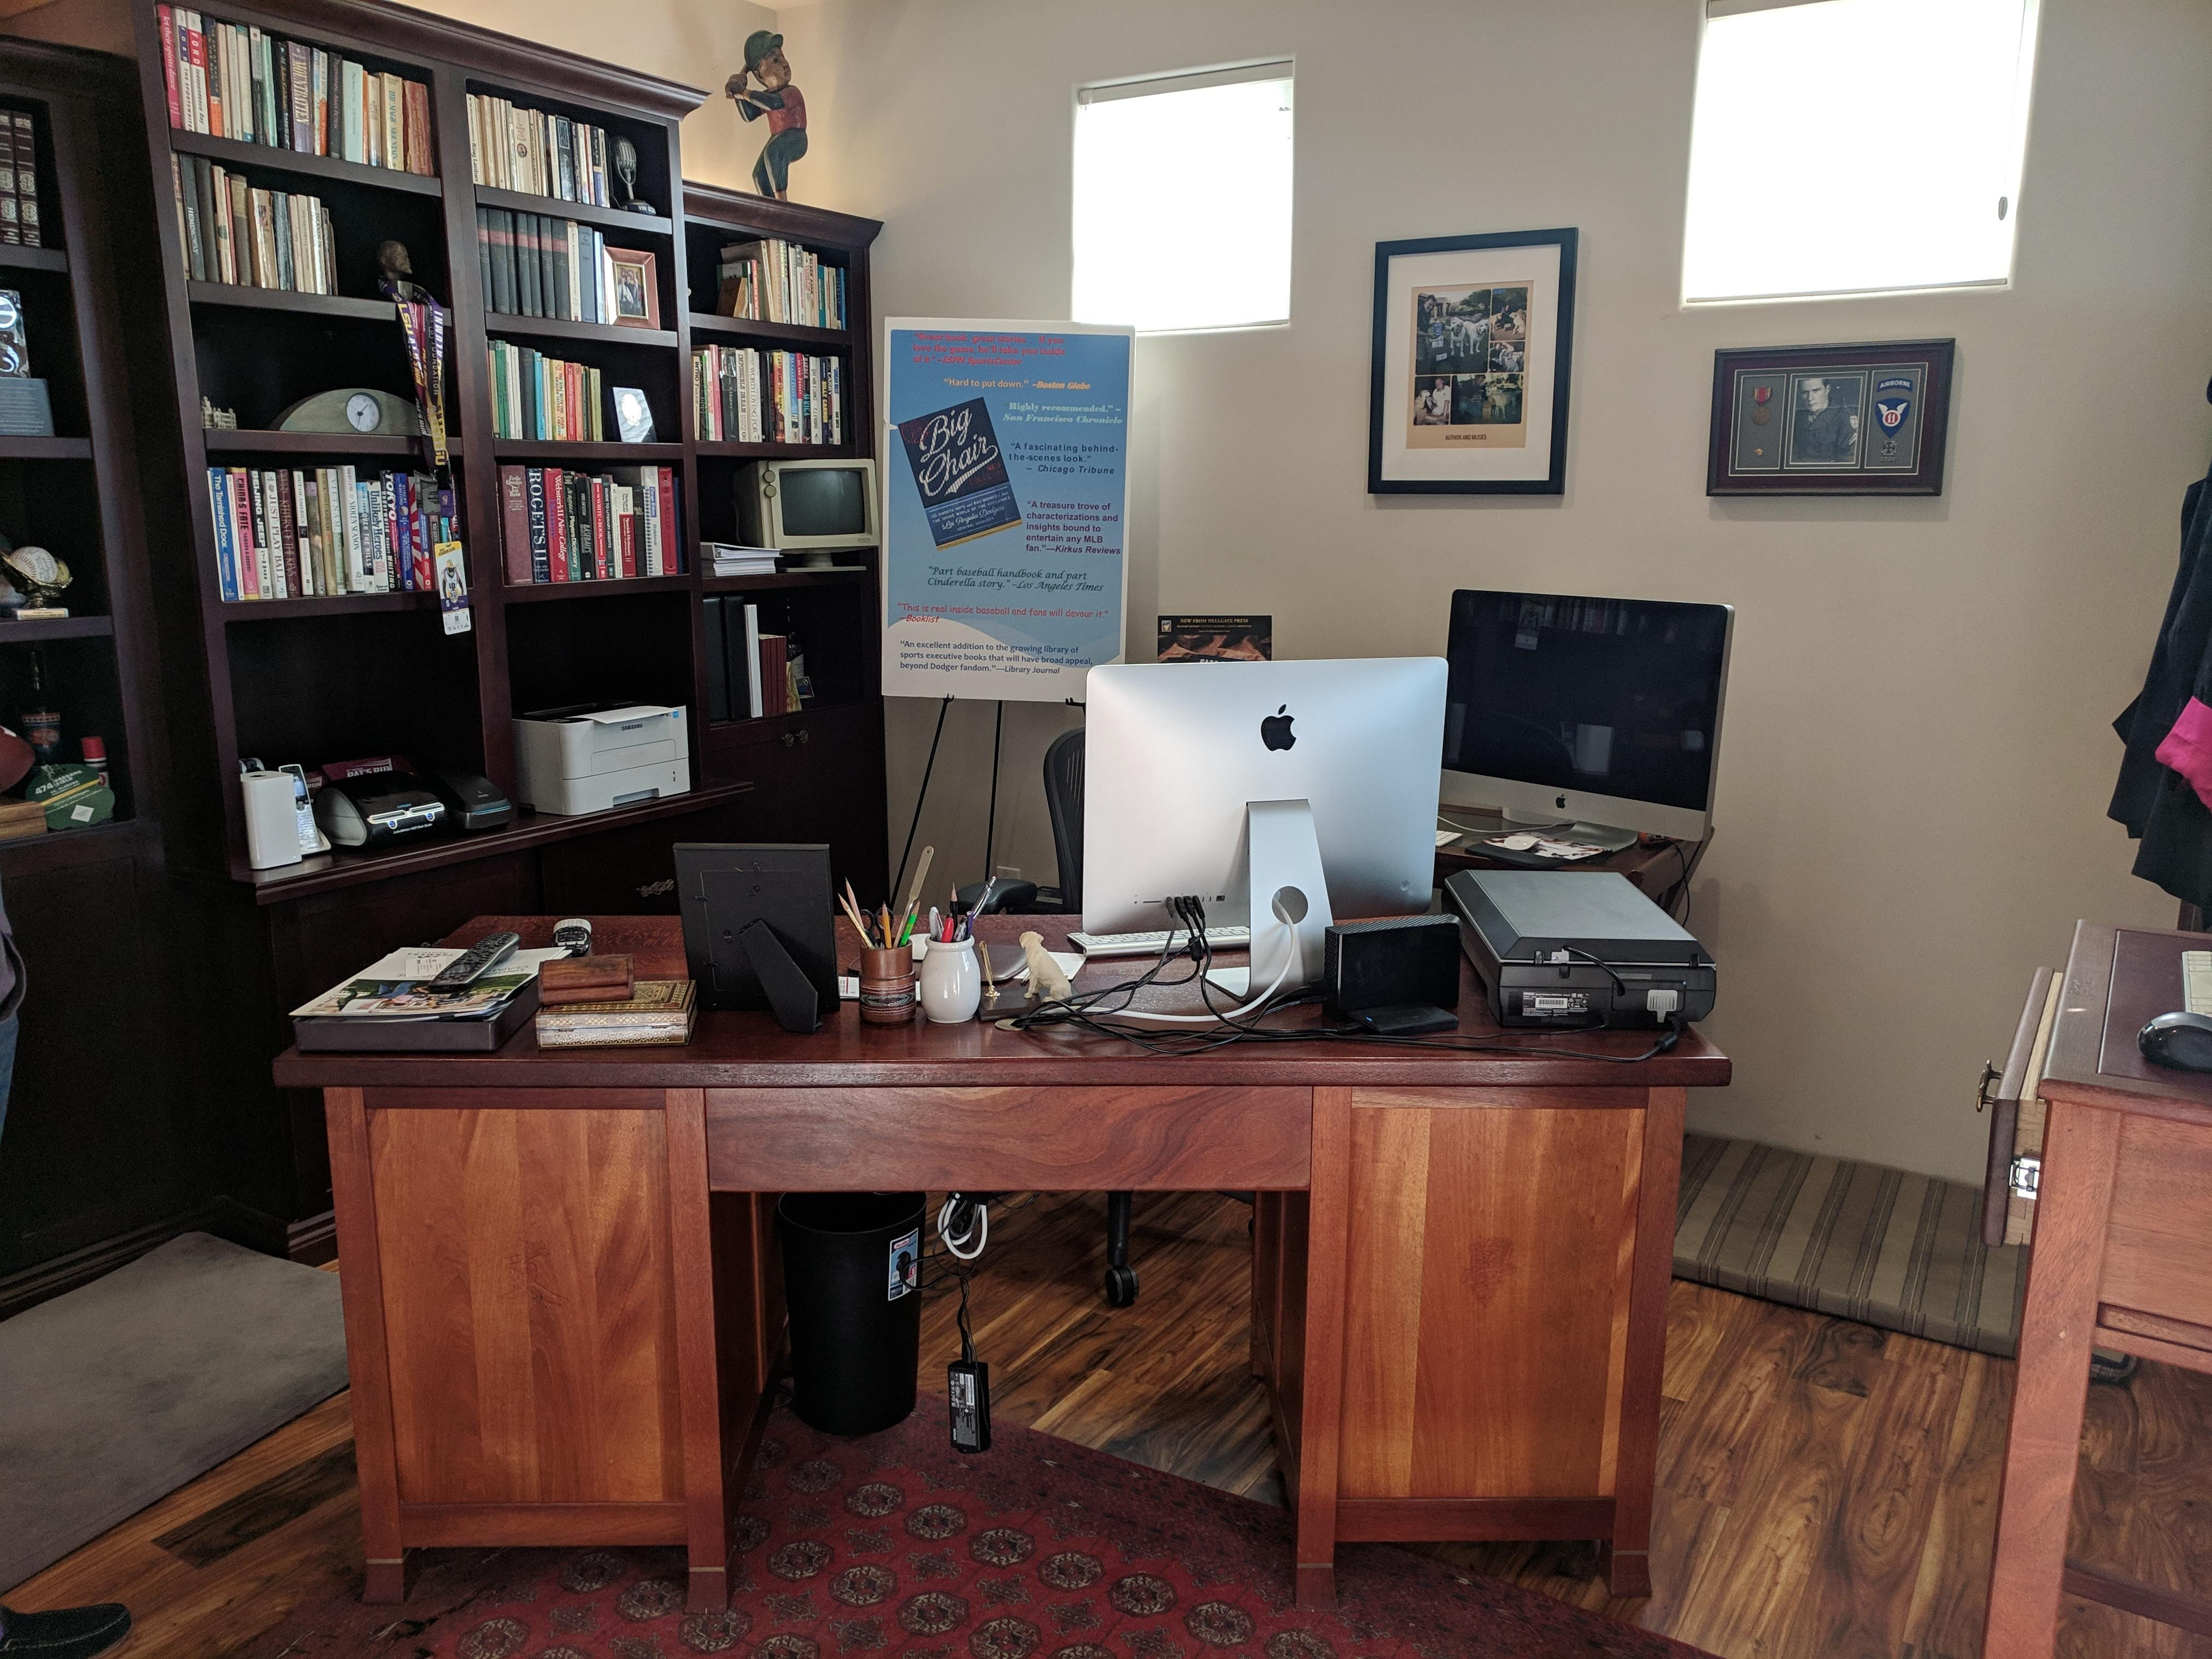 Joseph Reaves has a dedicated office in the back of the home, where he worked on the books he recently published related to his investigative reporting and his time working with the Los Angeles Dodgers.